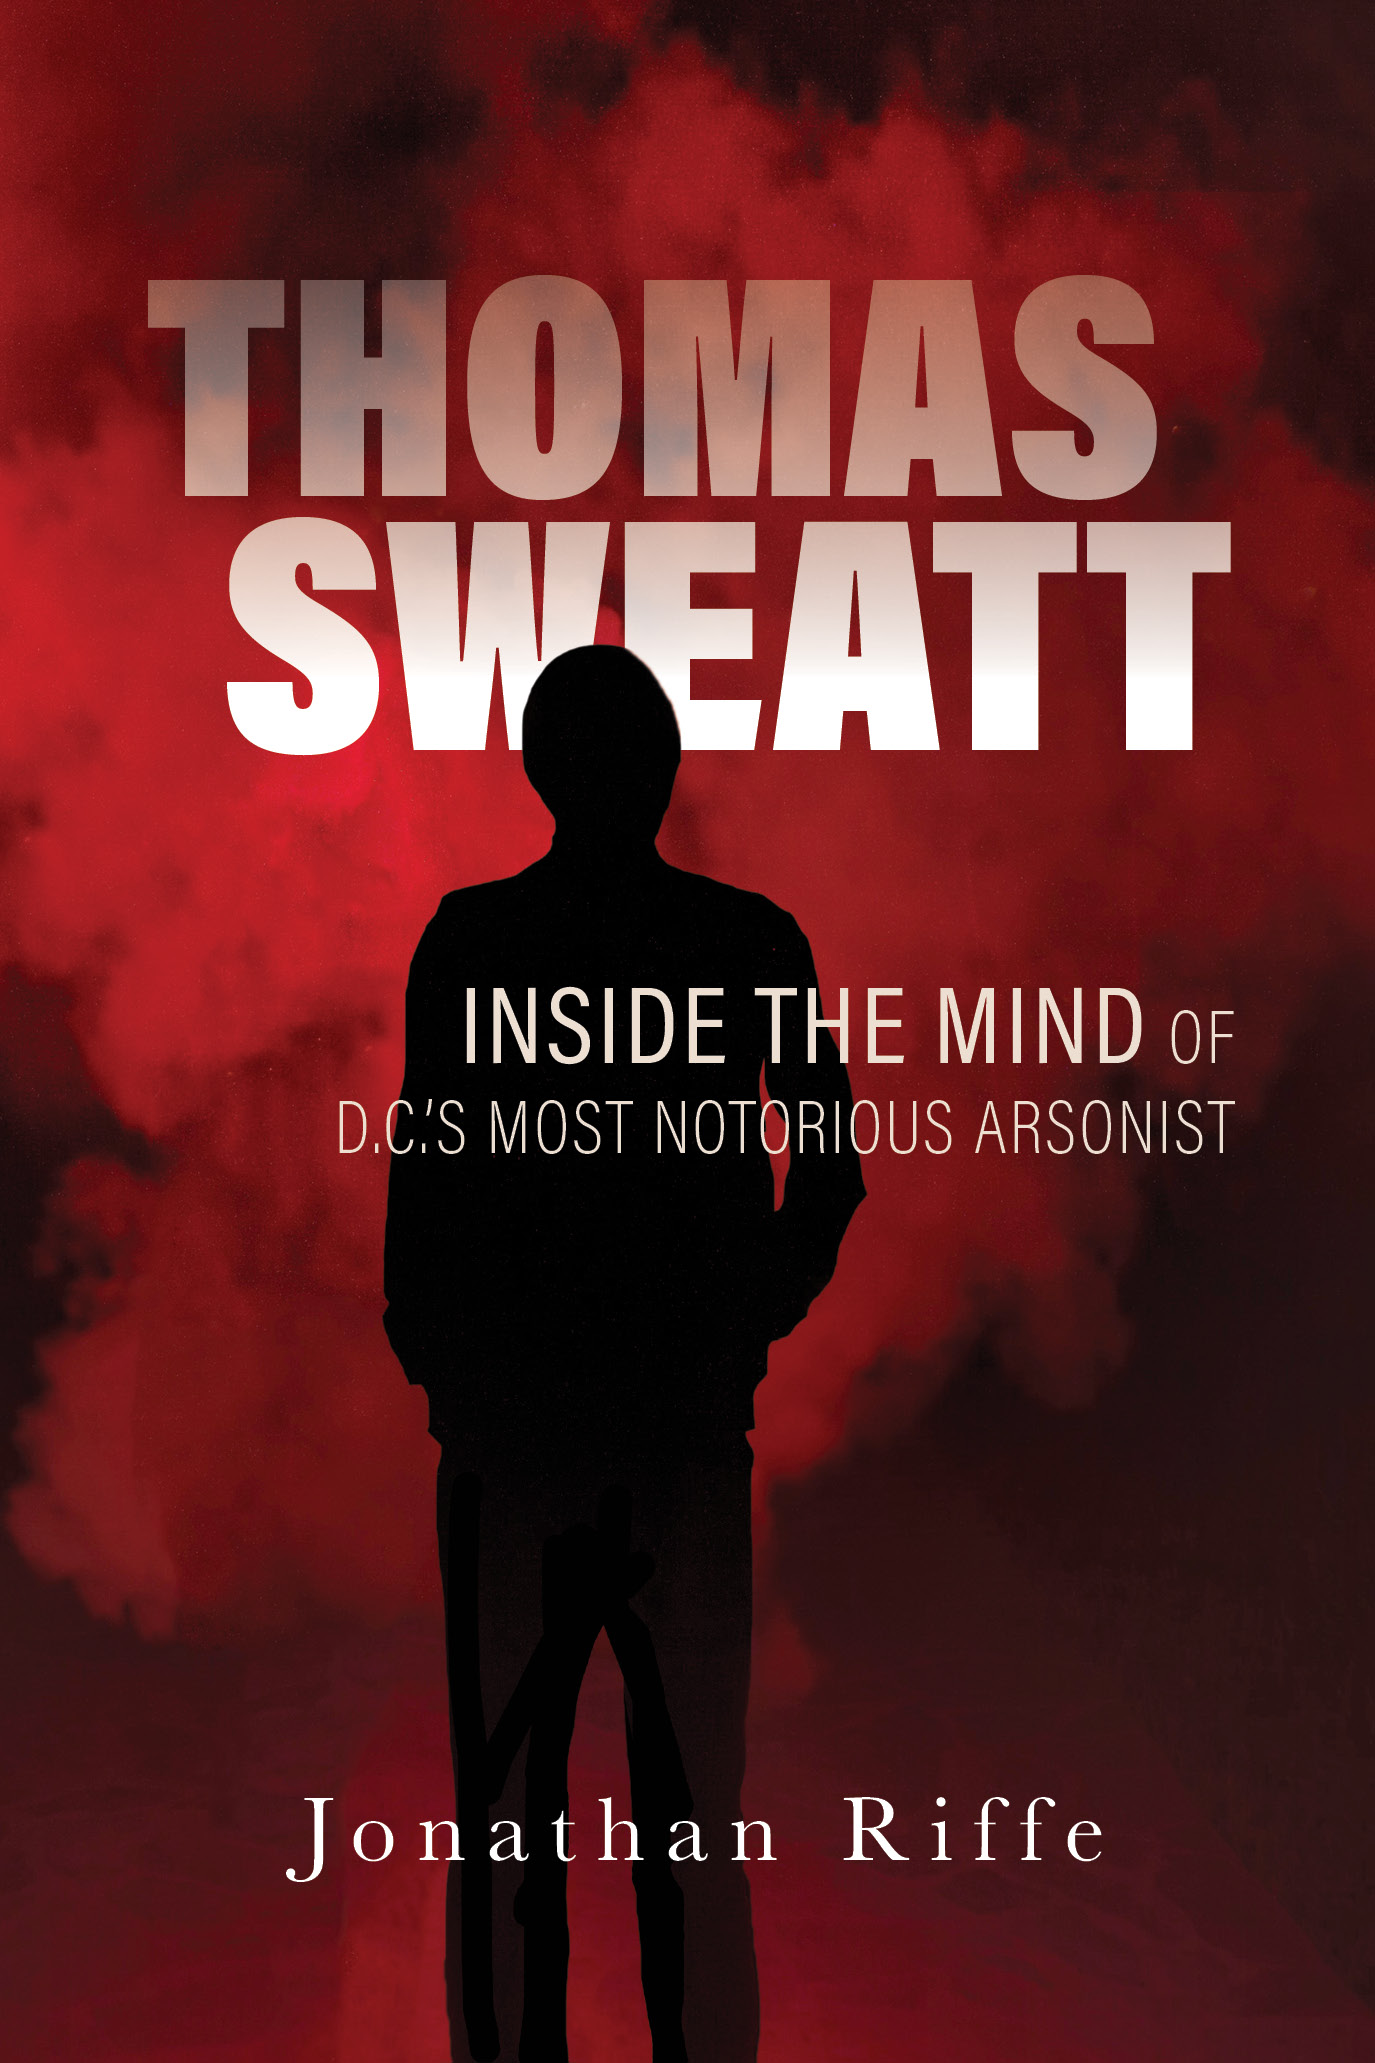 ThomasSweatt_Amazon